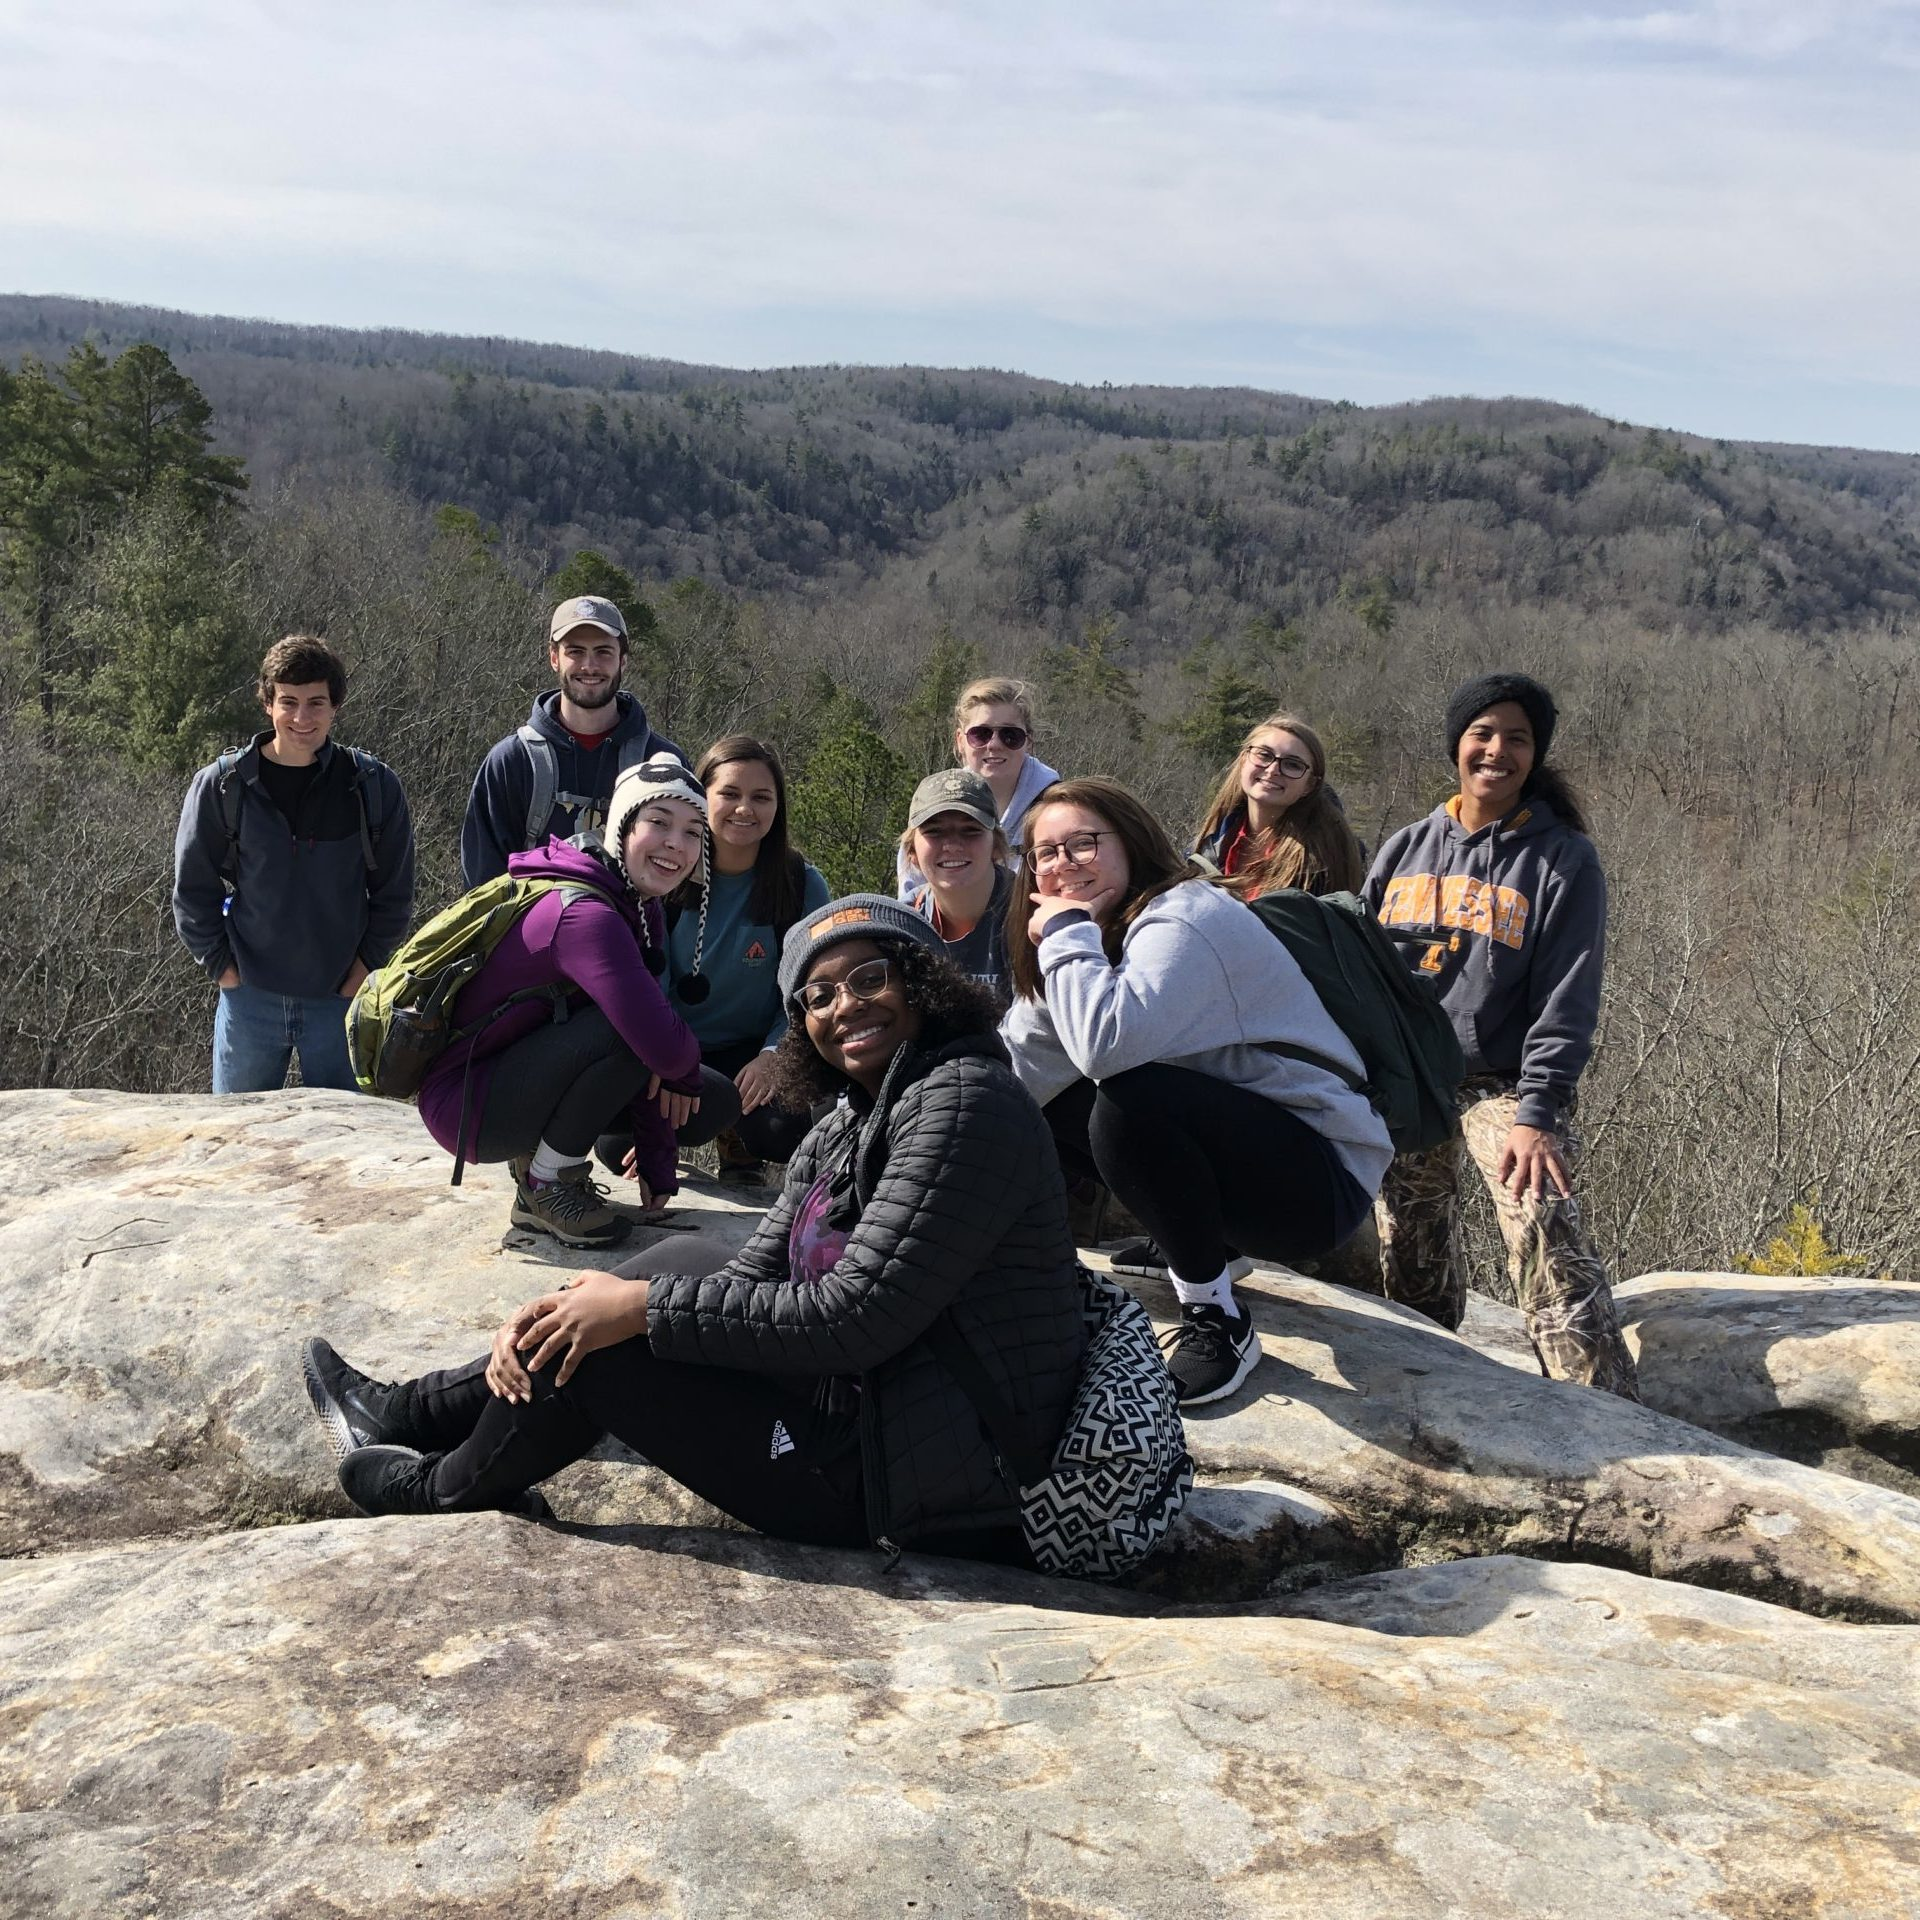 Students pose on a rock